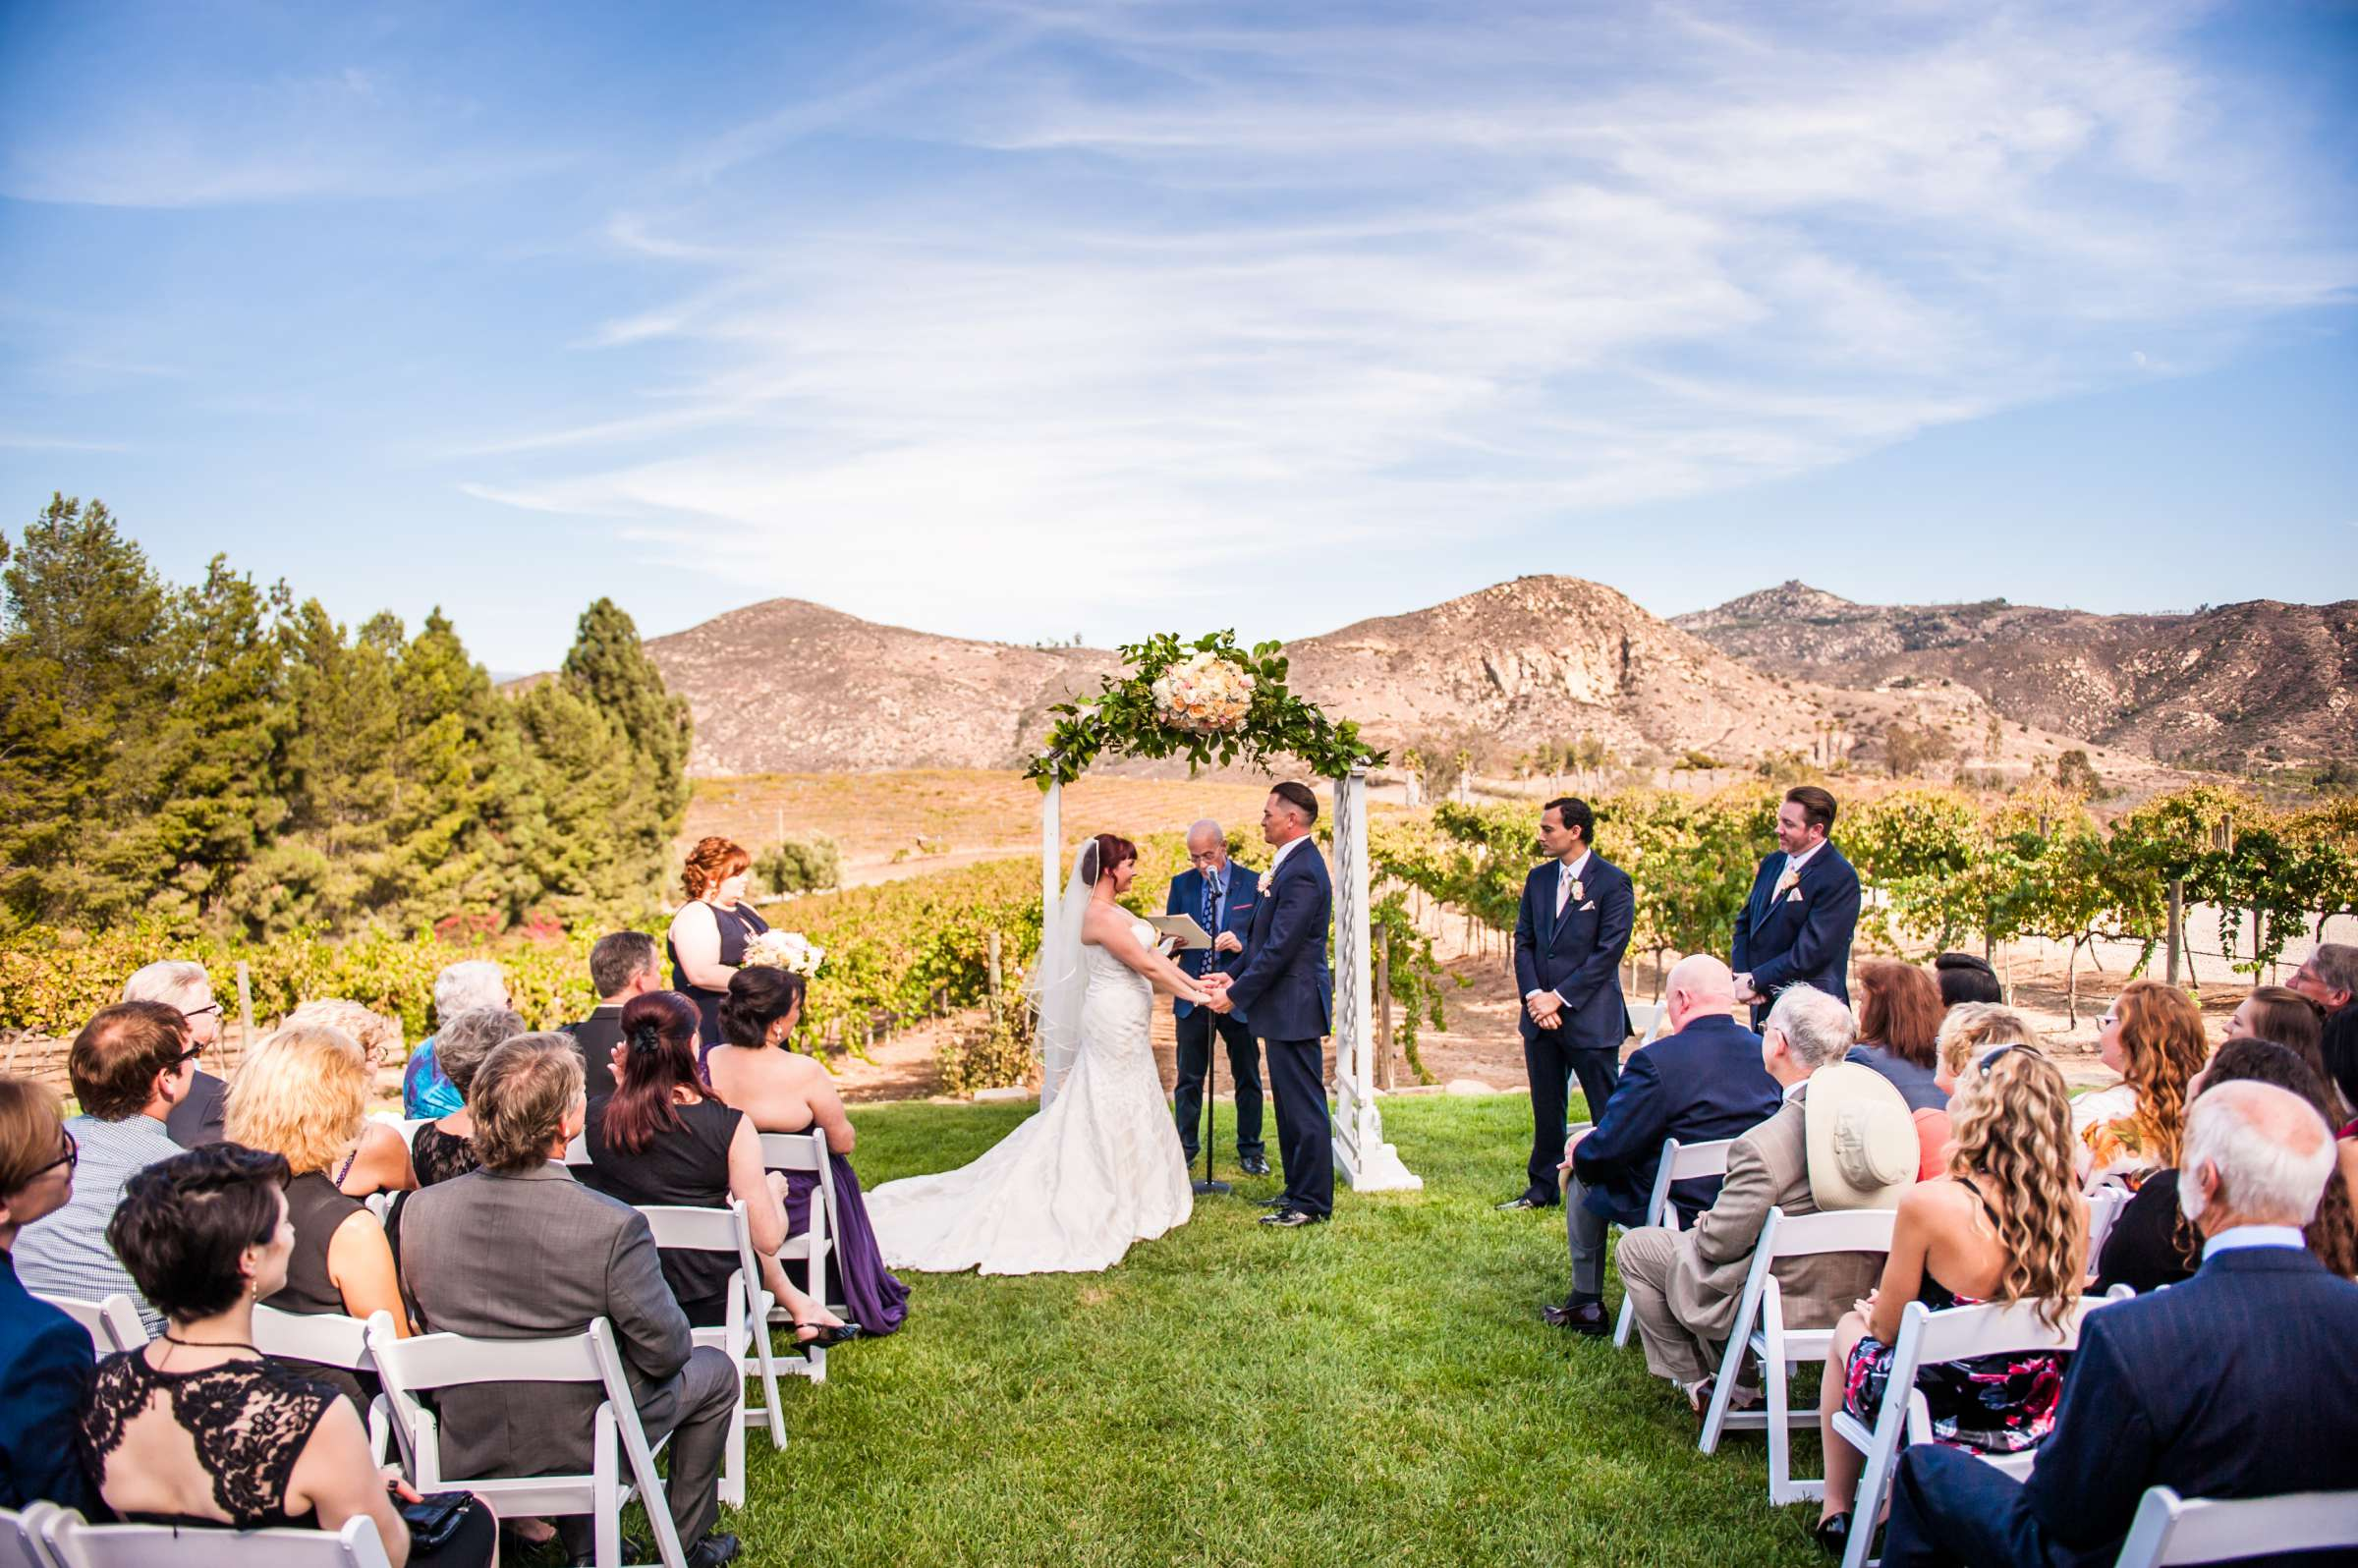 Orfila Vineyards Wedding, Tulasi and Richard Wedding Photo #21 by True Photography